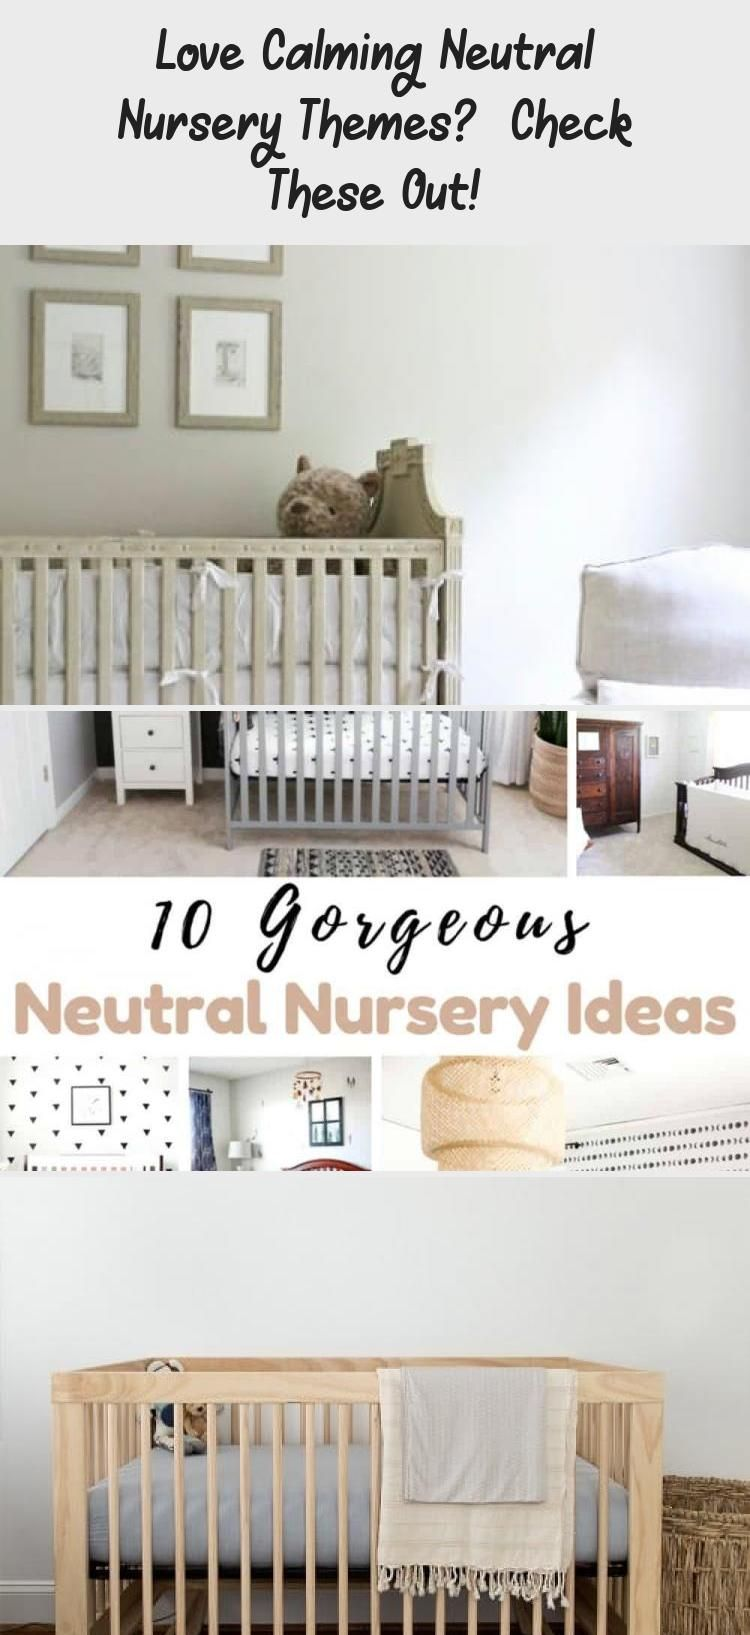 Photo of Love Calming Neutral Nursery Themes?  Check These Out! – Gender Neutral